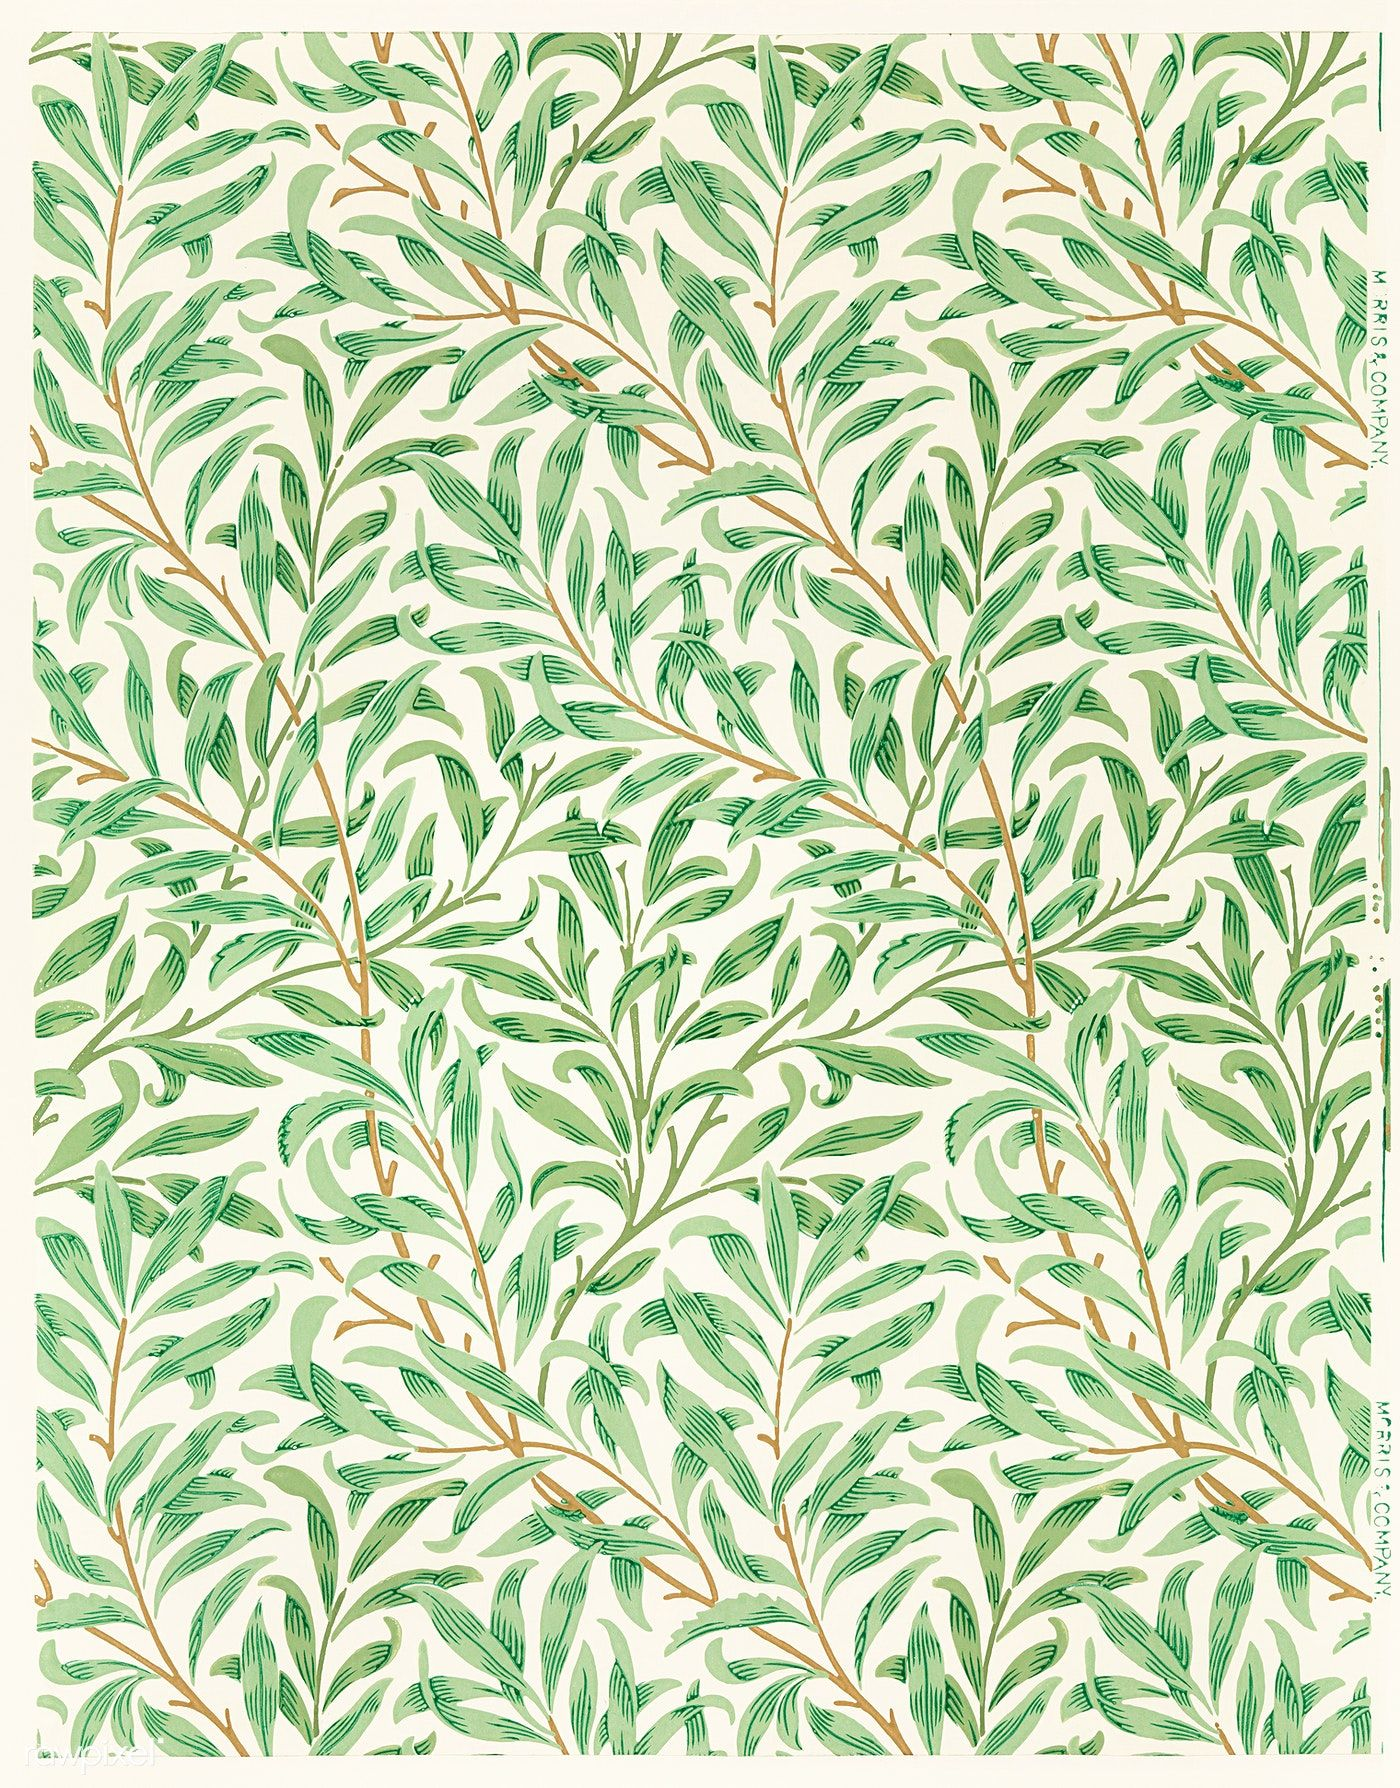 Vintage Willow Bough Vintage Illustration Wall Art Print And Poster Design Remix From The Orig In 2020 William Morris Wallpaper Morris Wallpapers Illustration Wall Art